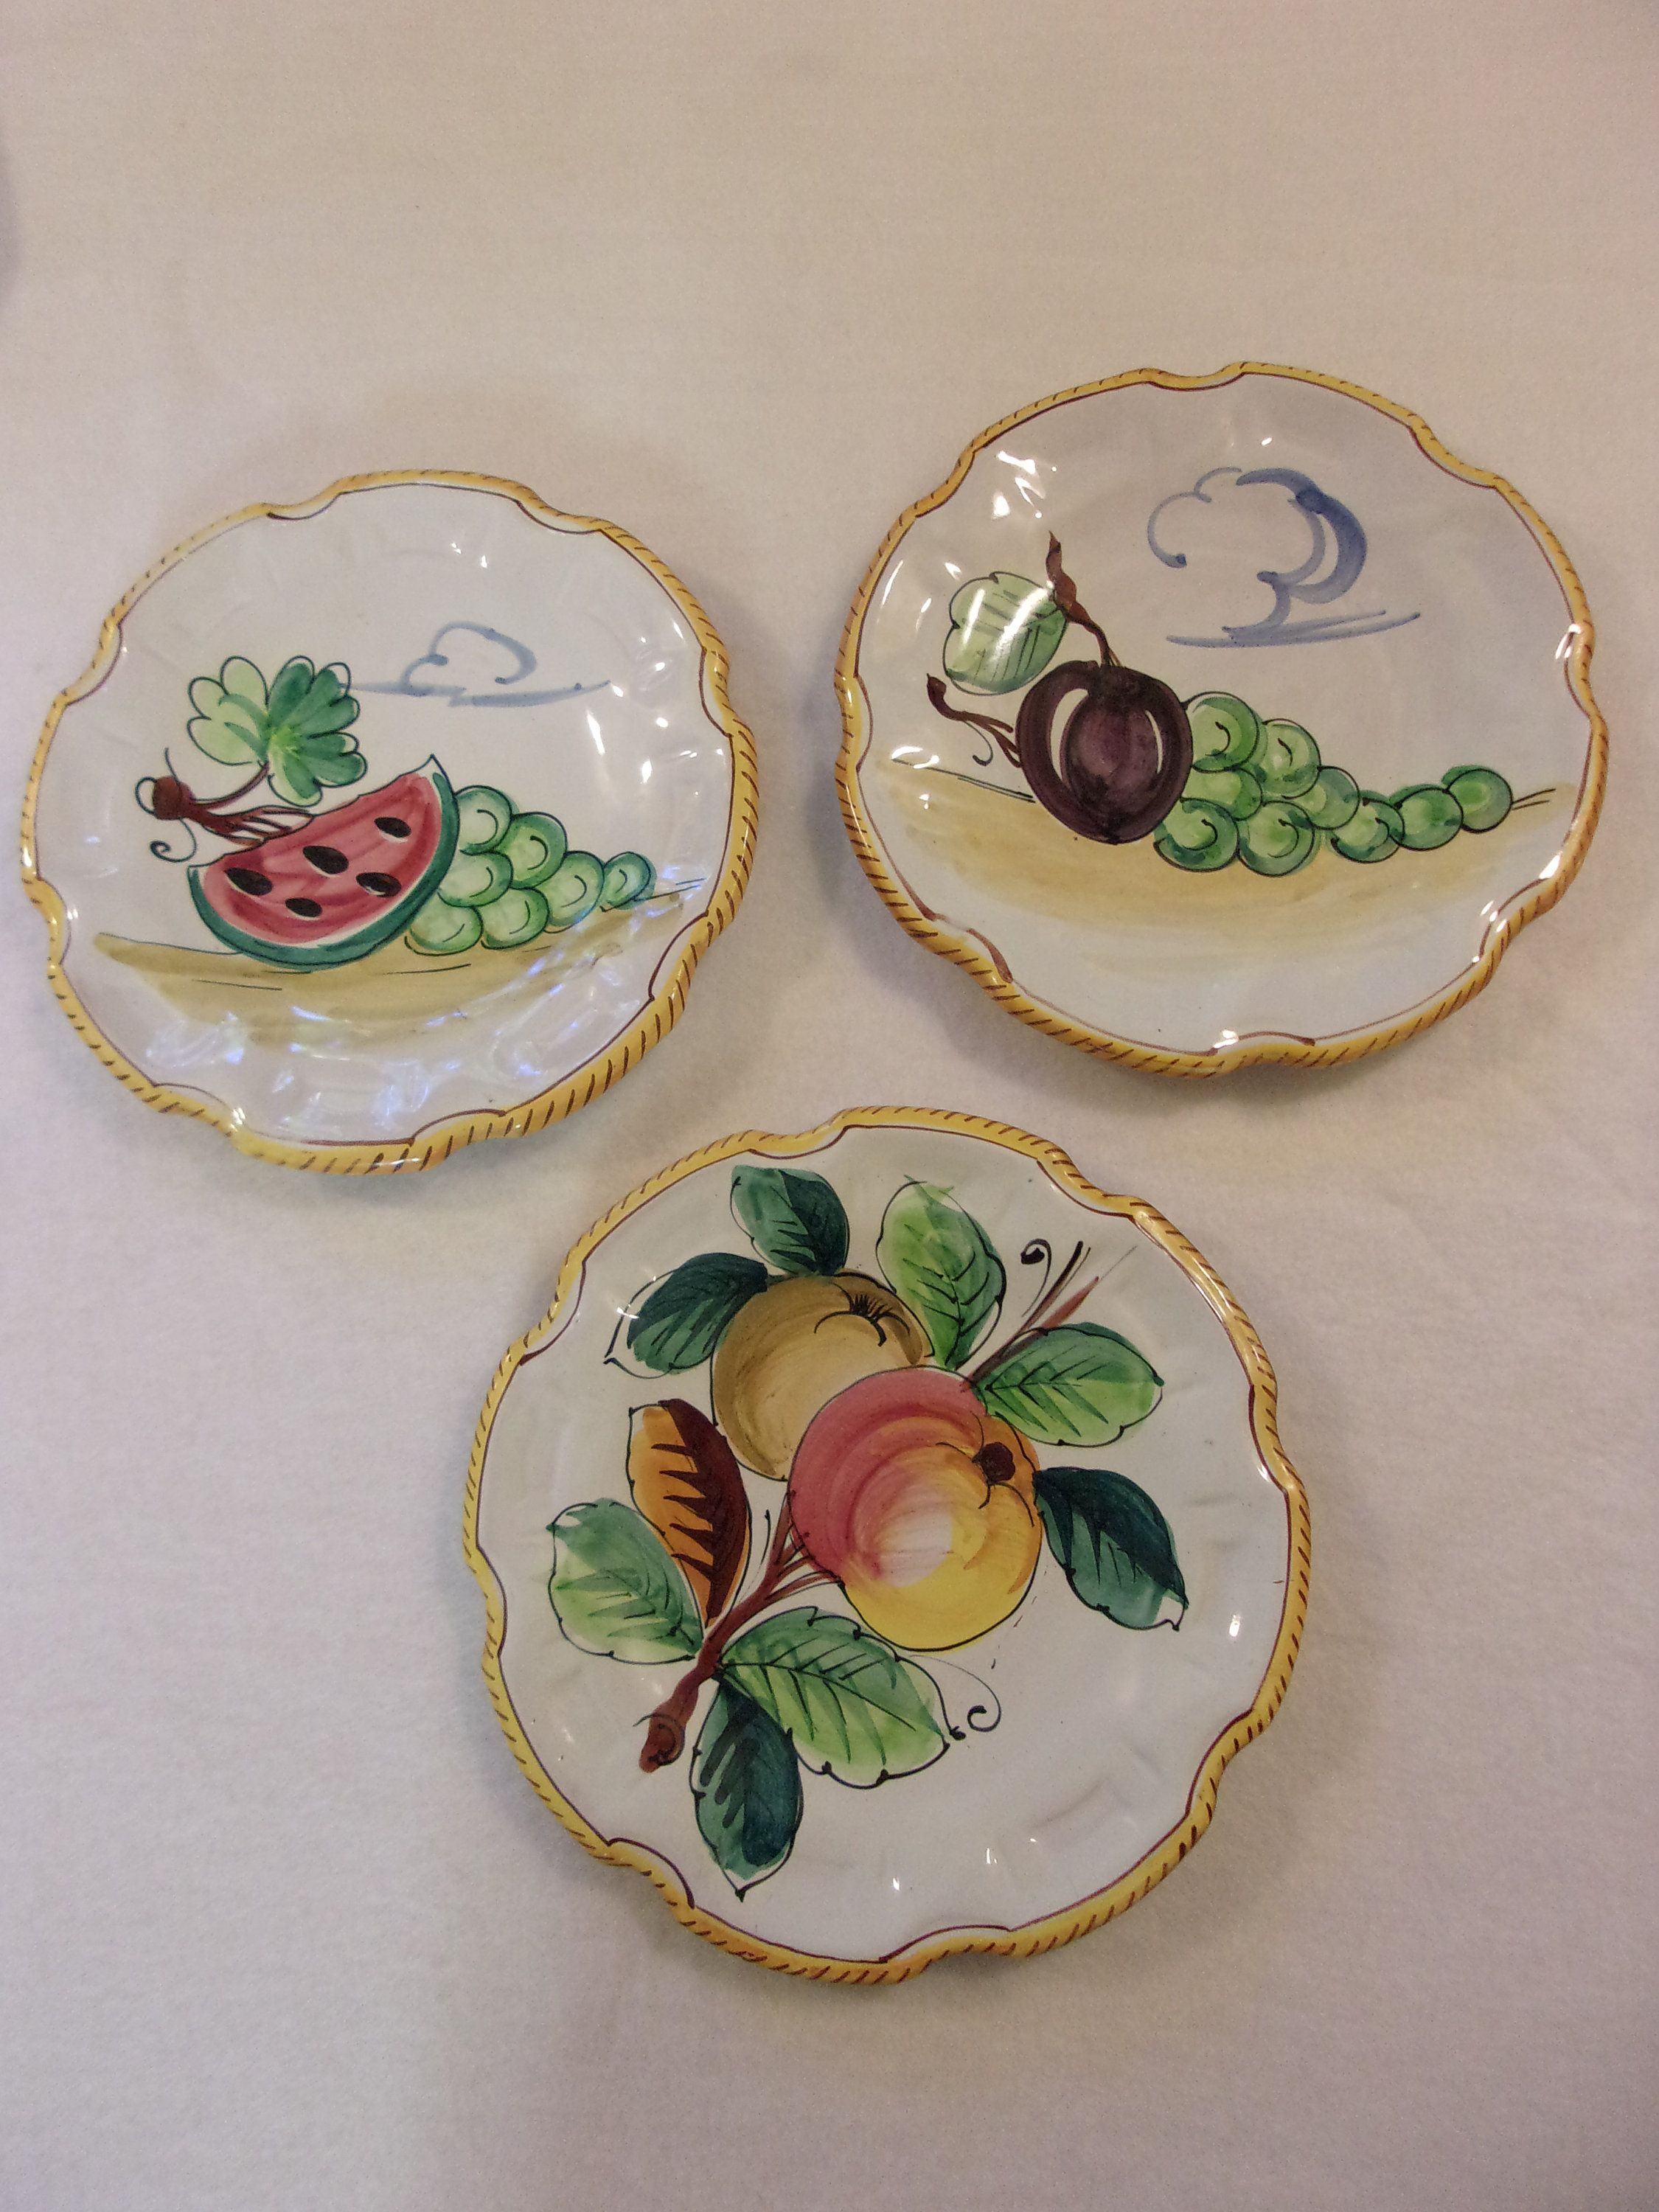 Vintage Italian Plates 9 Inch Plates Lot Of 3 Hand Painted Numbered Ceramic Plates Fruit Motif Scalloped Rim Displ Vintage Italian Hand Painted Plate Display